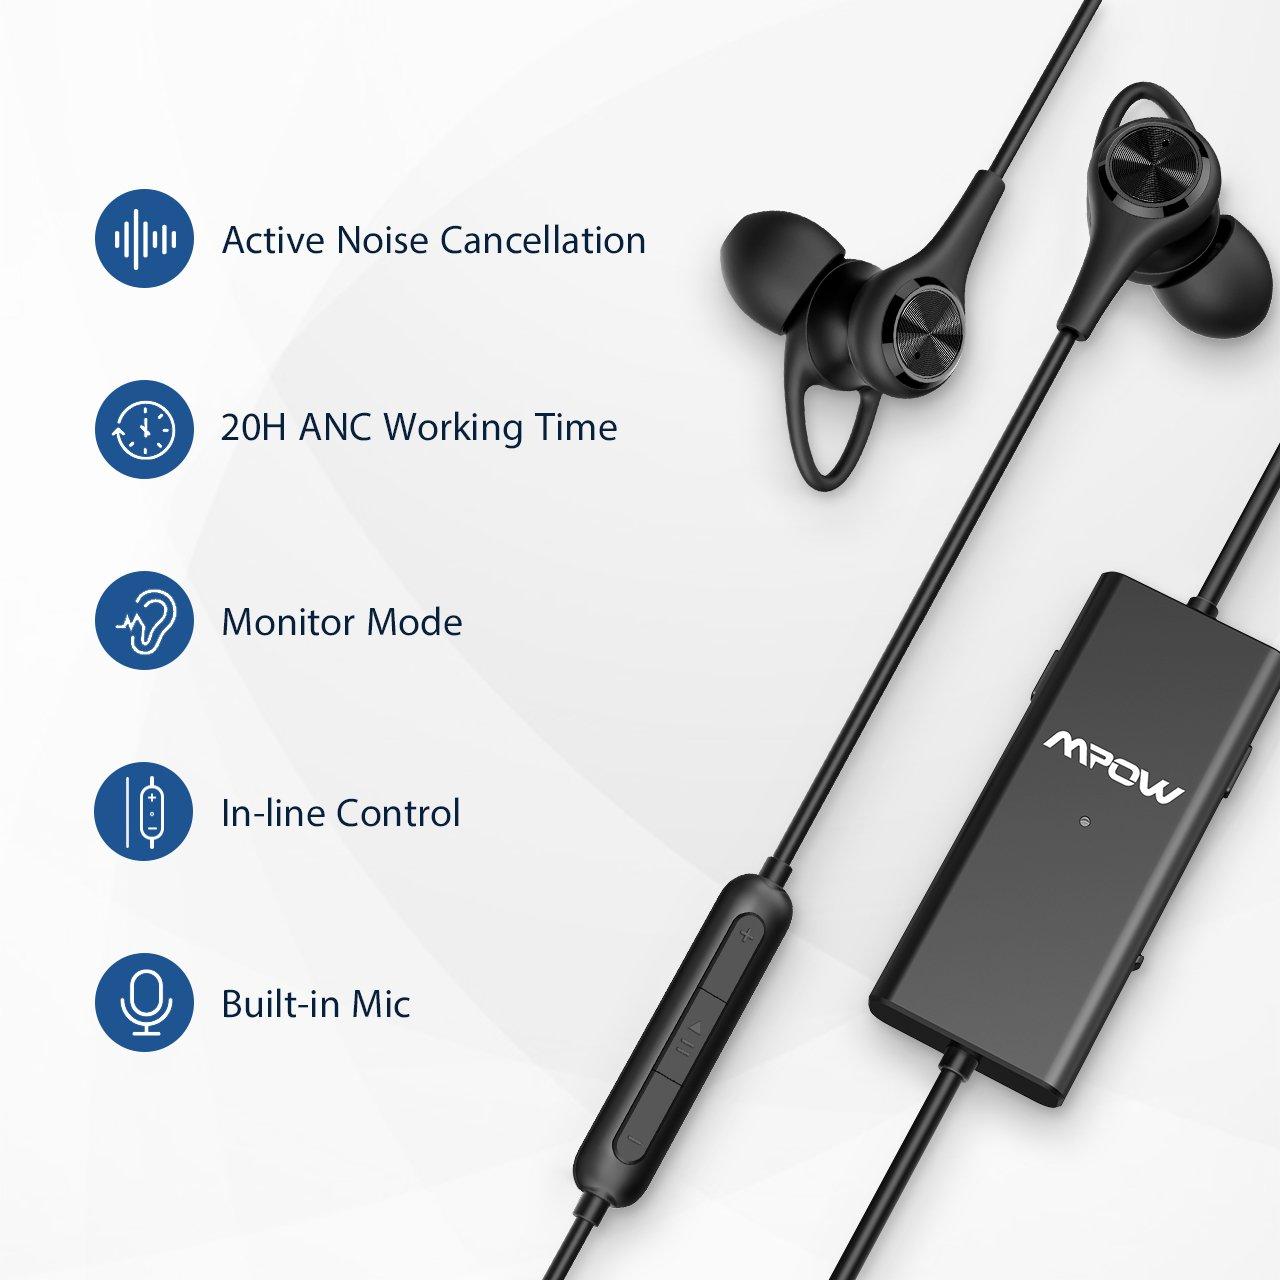 Mpow Active Noise Cancelling Headphones with Mic, Stereo Wired In Ear  Headphones, 20 Hours ANC Playtime Earphones with Awareness Monitor Mode,